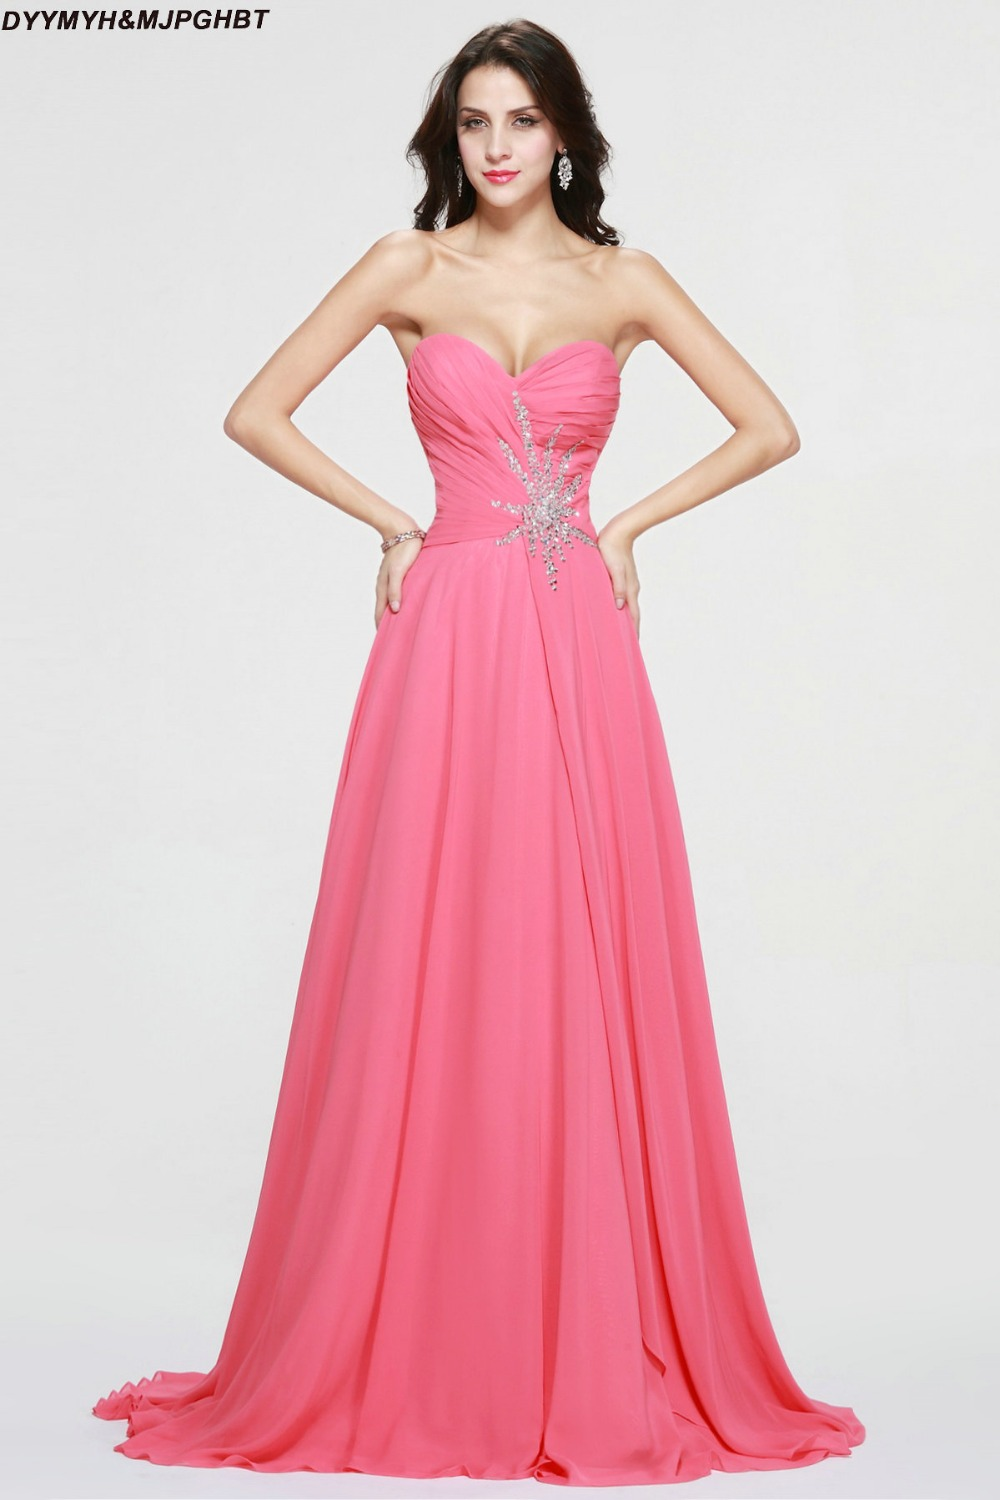 Aliexpress buy afforable hot pink maid of honor gowns aliexpress buy afforable hot pink maid of honor gowns sweetheart with pleatbeads peach long bridesmaid dresses under 100 from reliable maid of honor ombrellifo Gallery